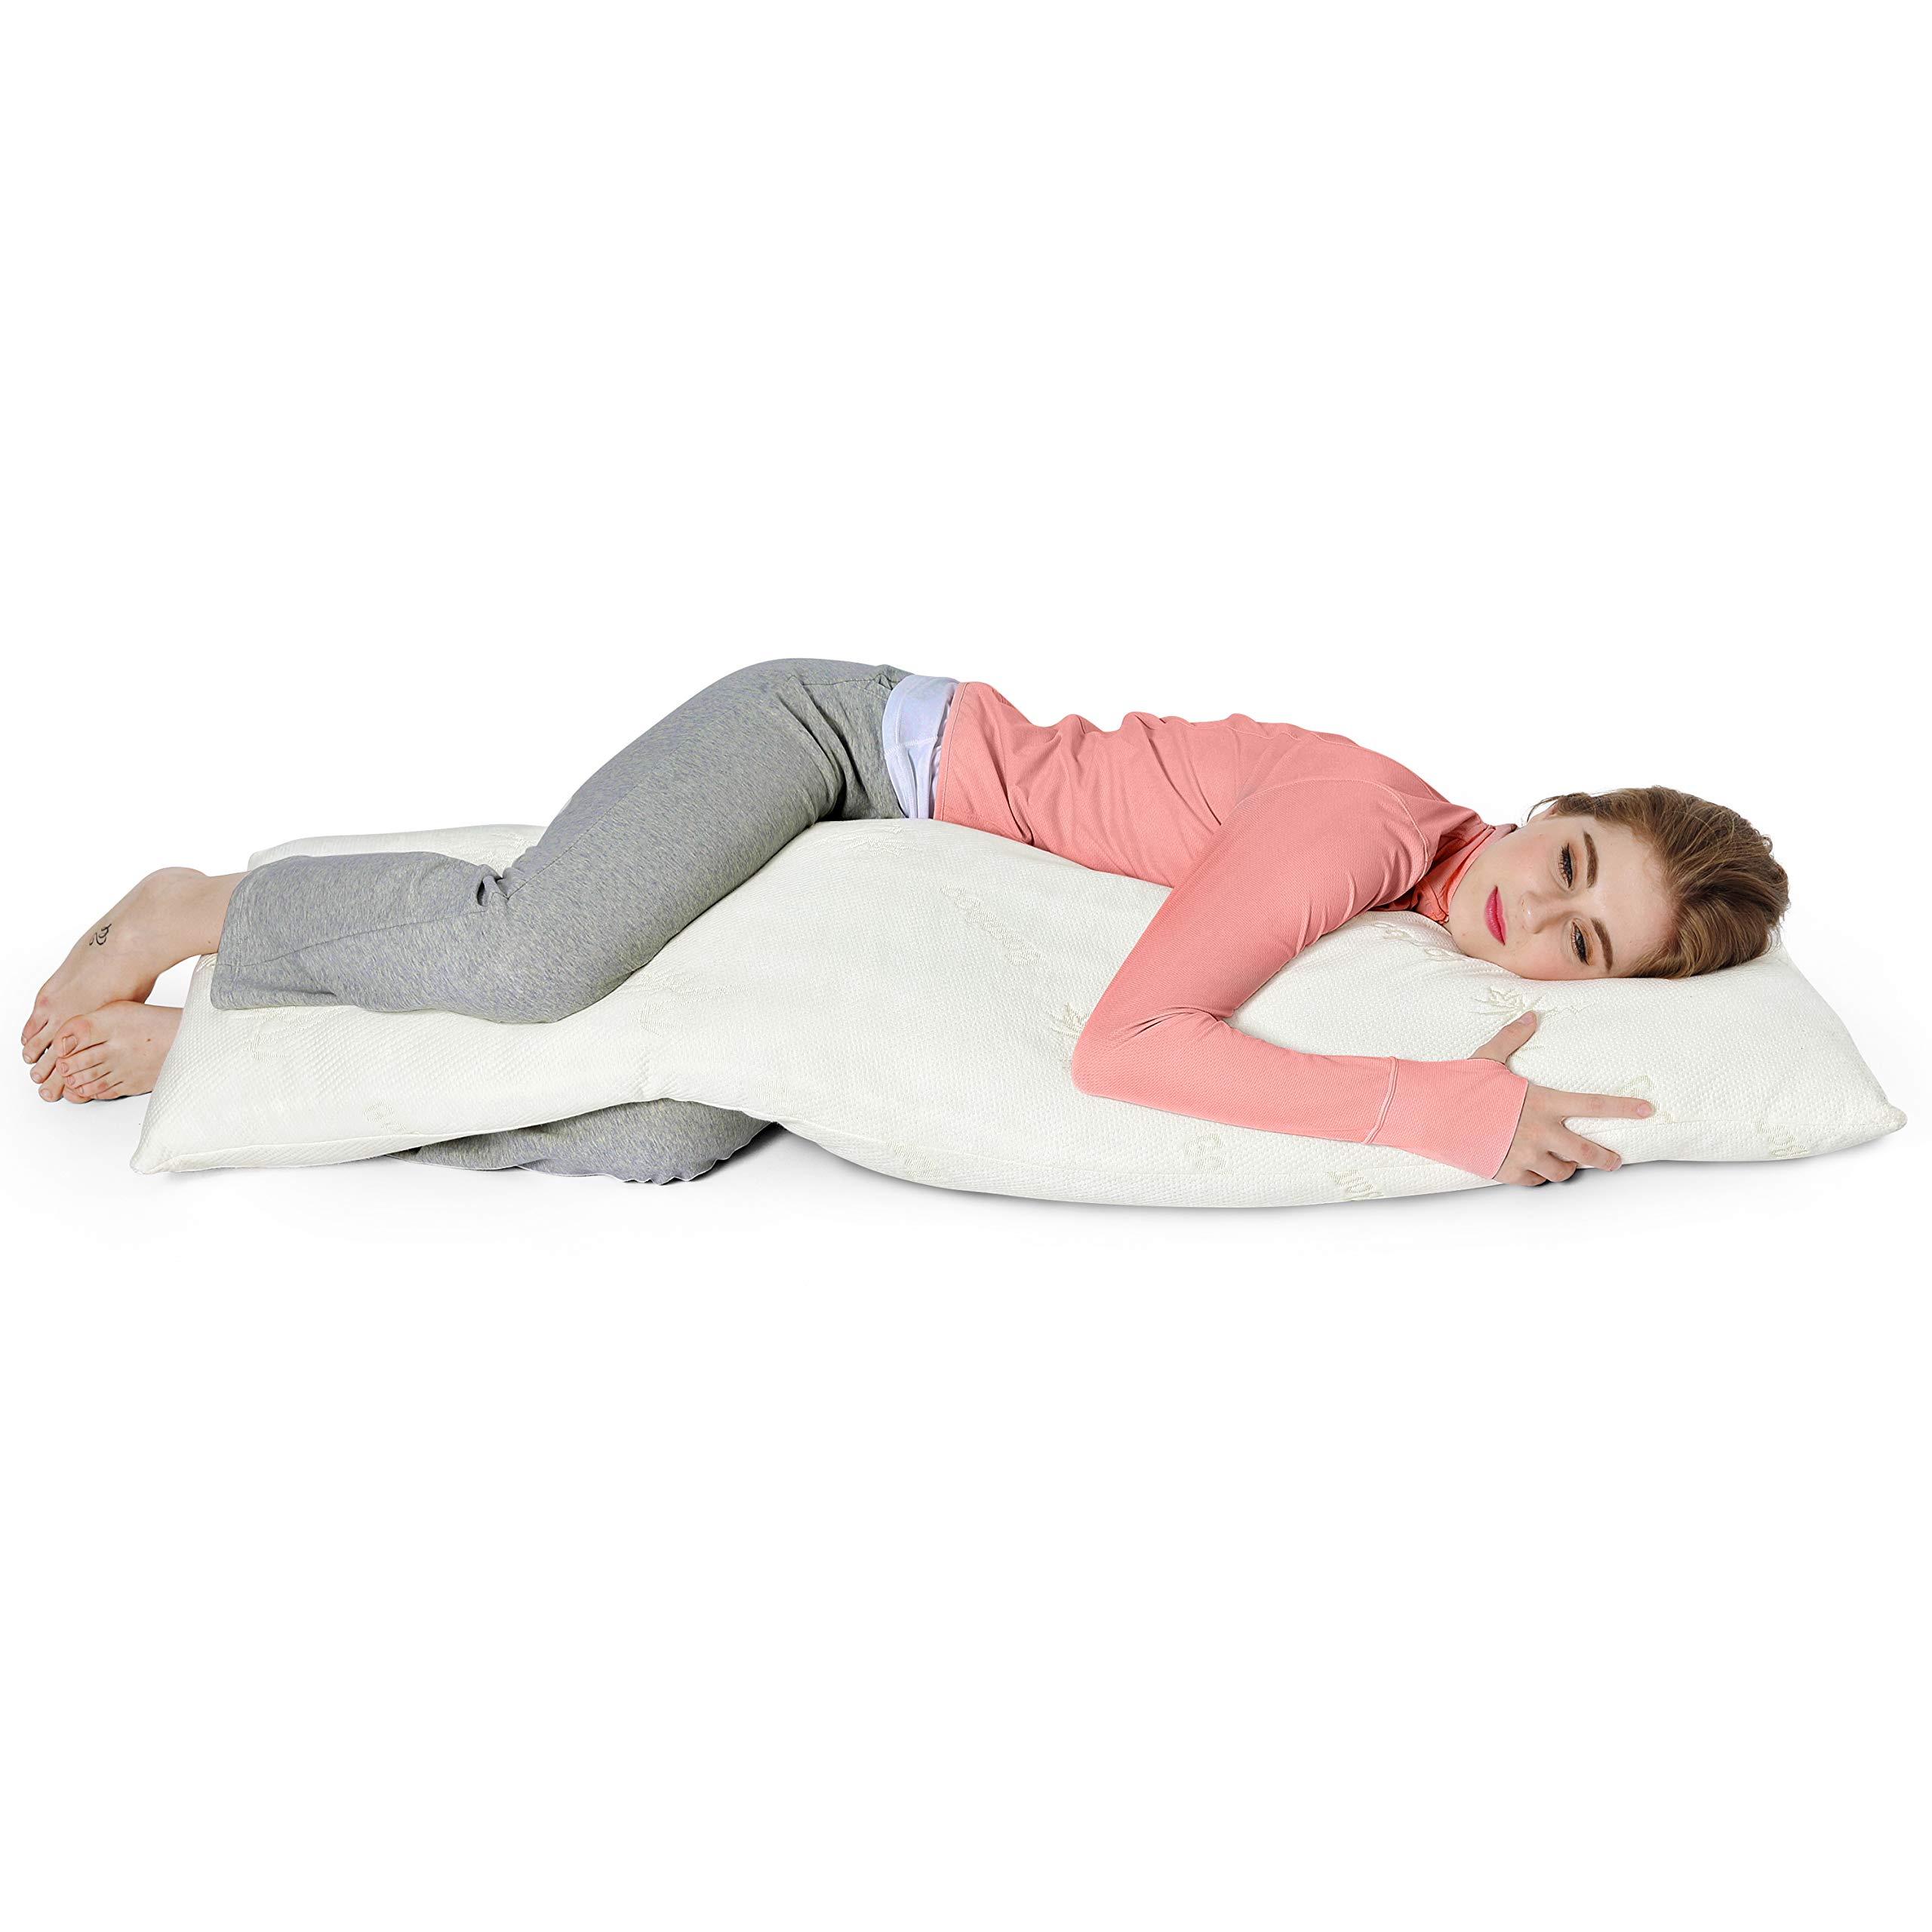 AmazingDreams Full Body Pillow - Side Sleeper Pillow and Pregnancy Pillow with Washable Bamboo Cover by Amazing Dreams (Image #2)